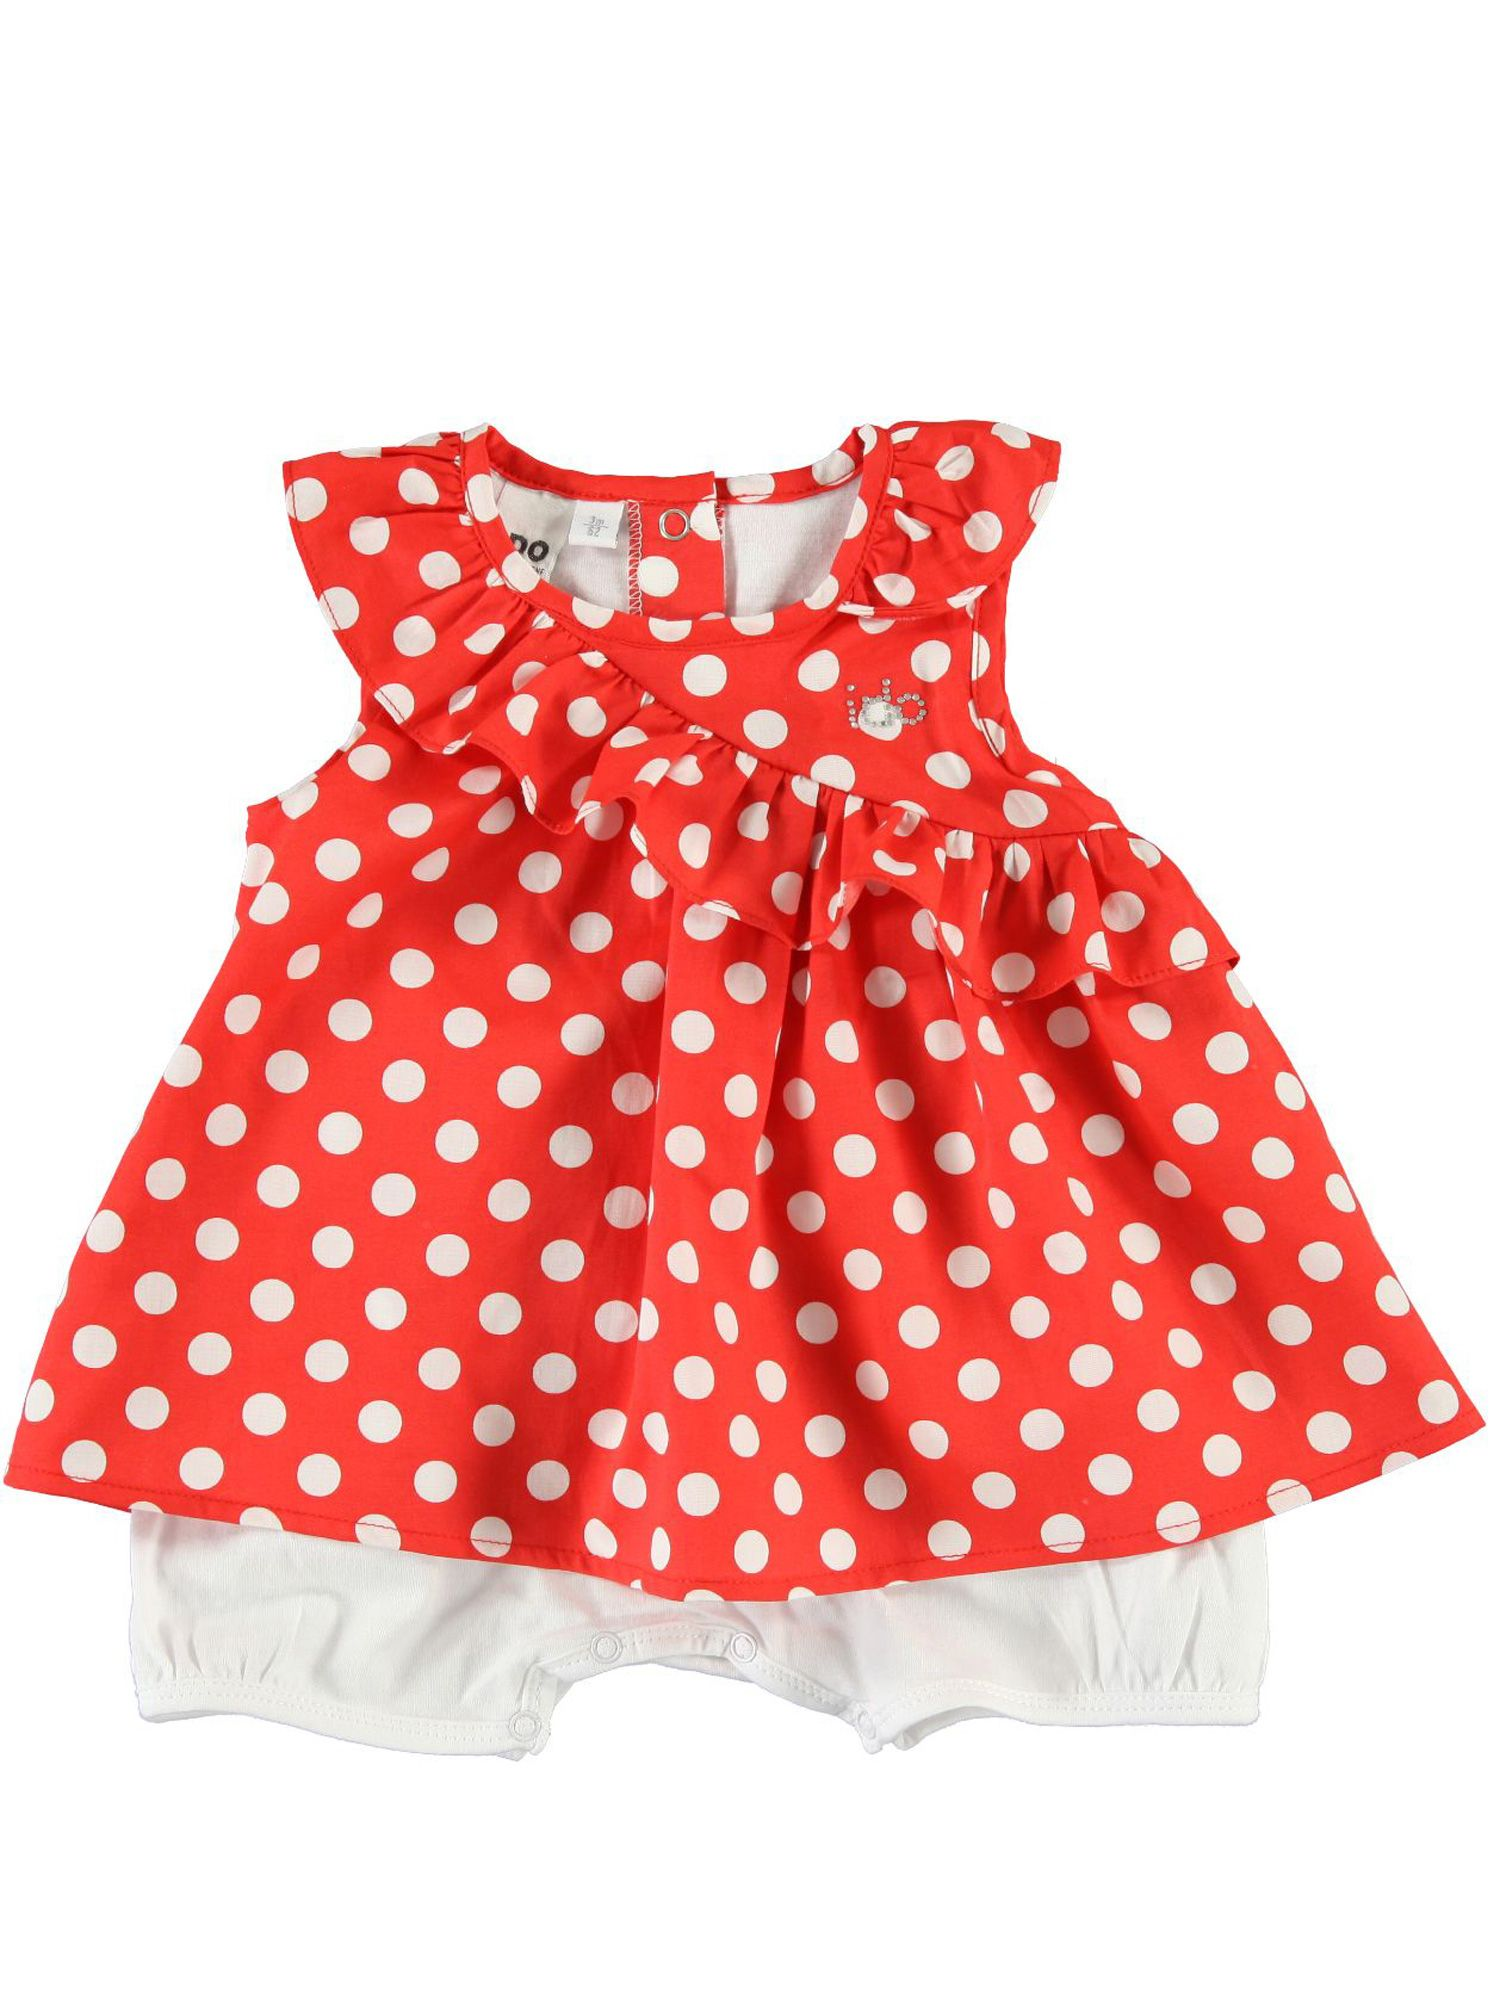 Baby girls dress and bodysuit